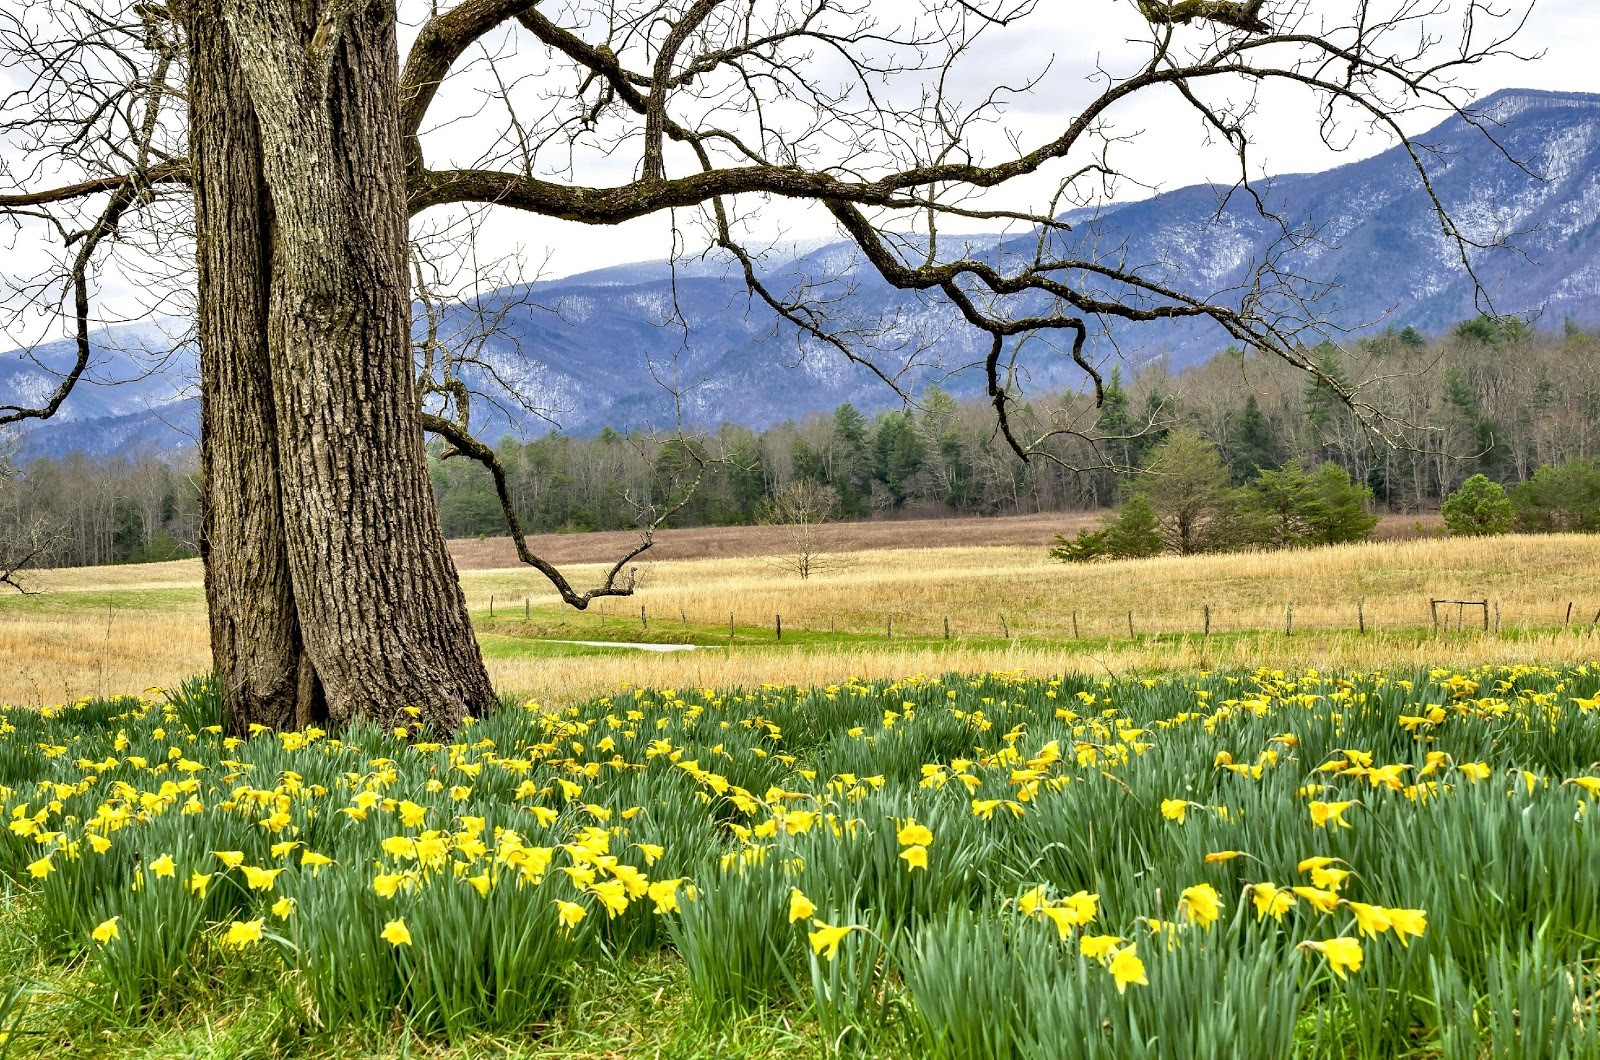 Snow on the Mountains and Daffodils on the Hill